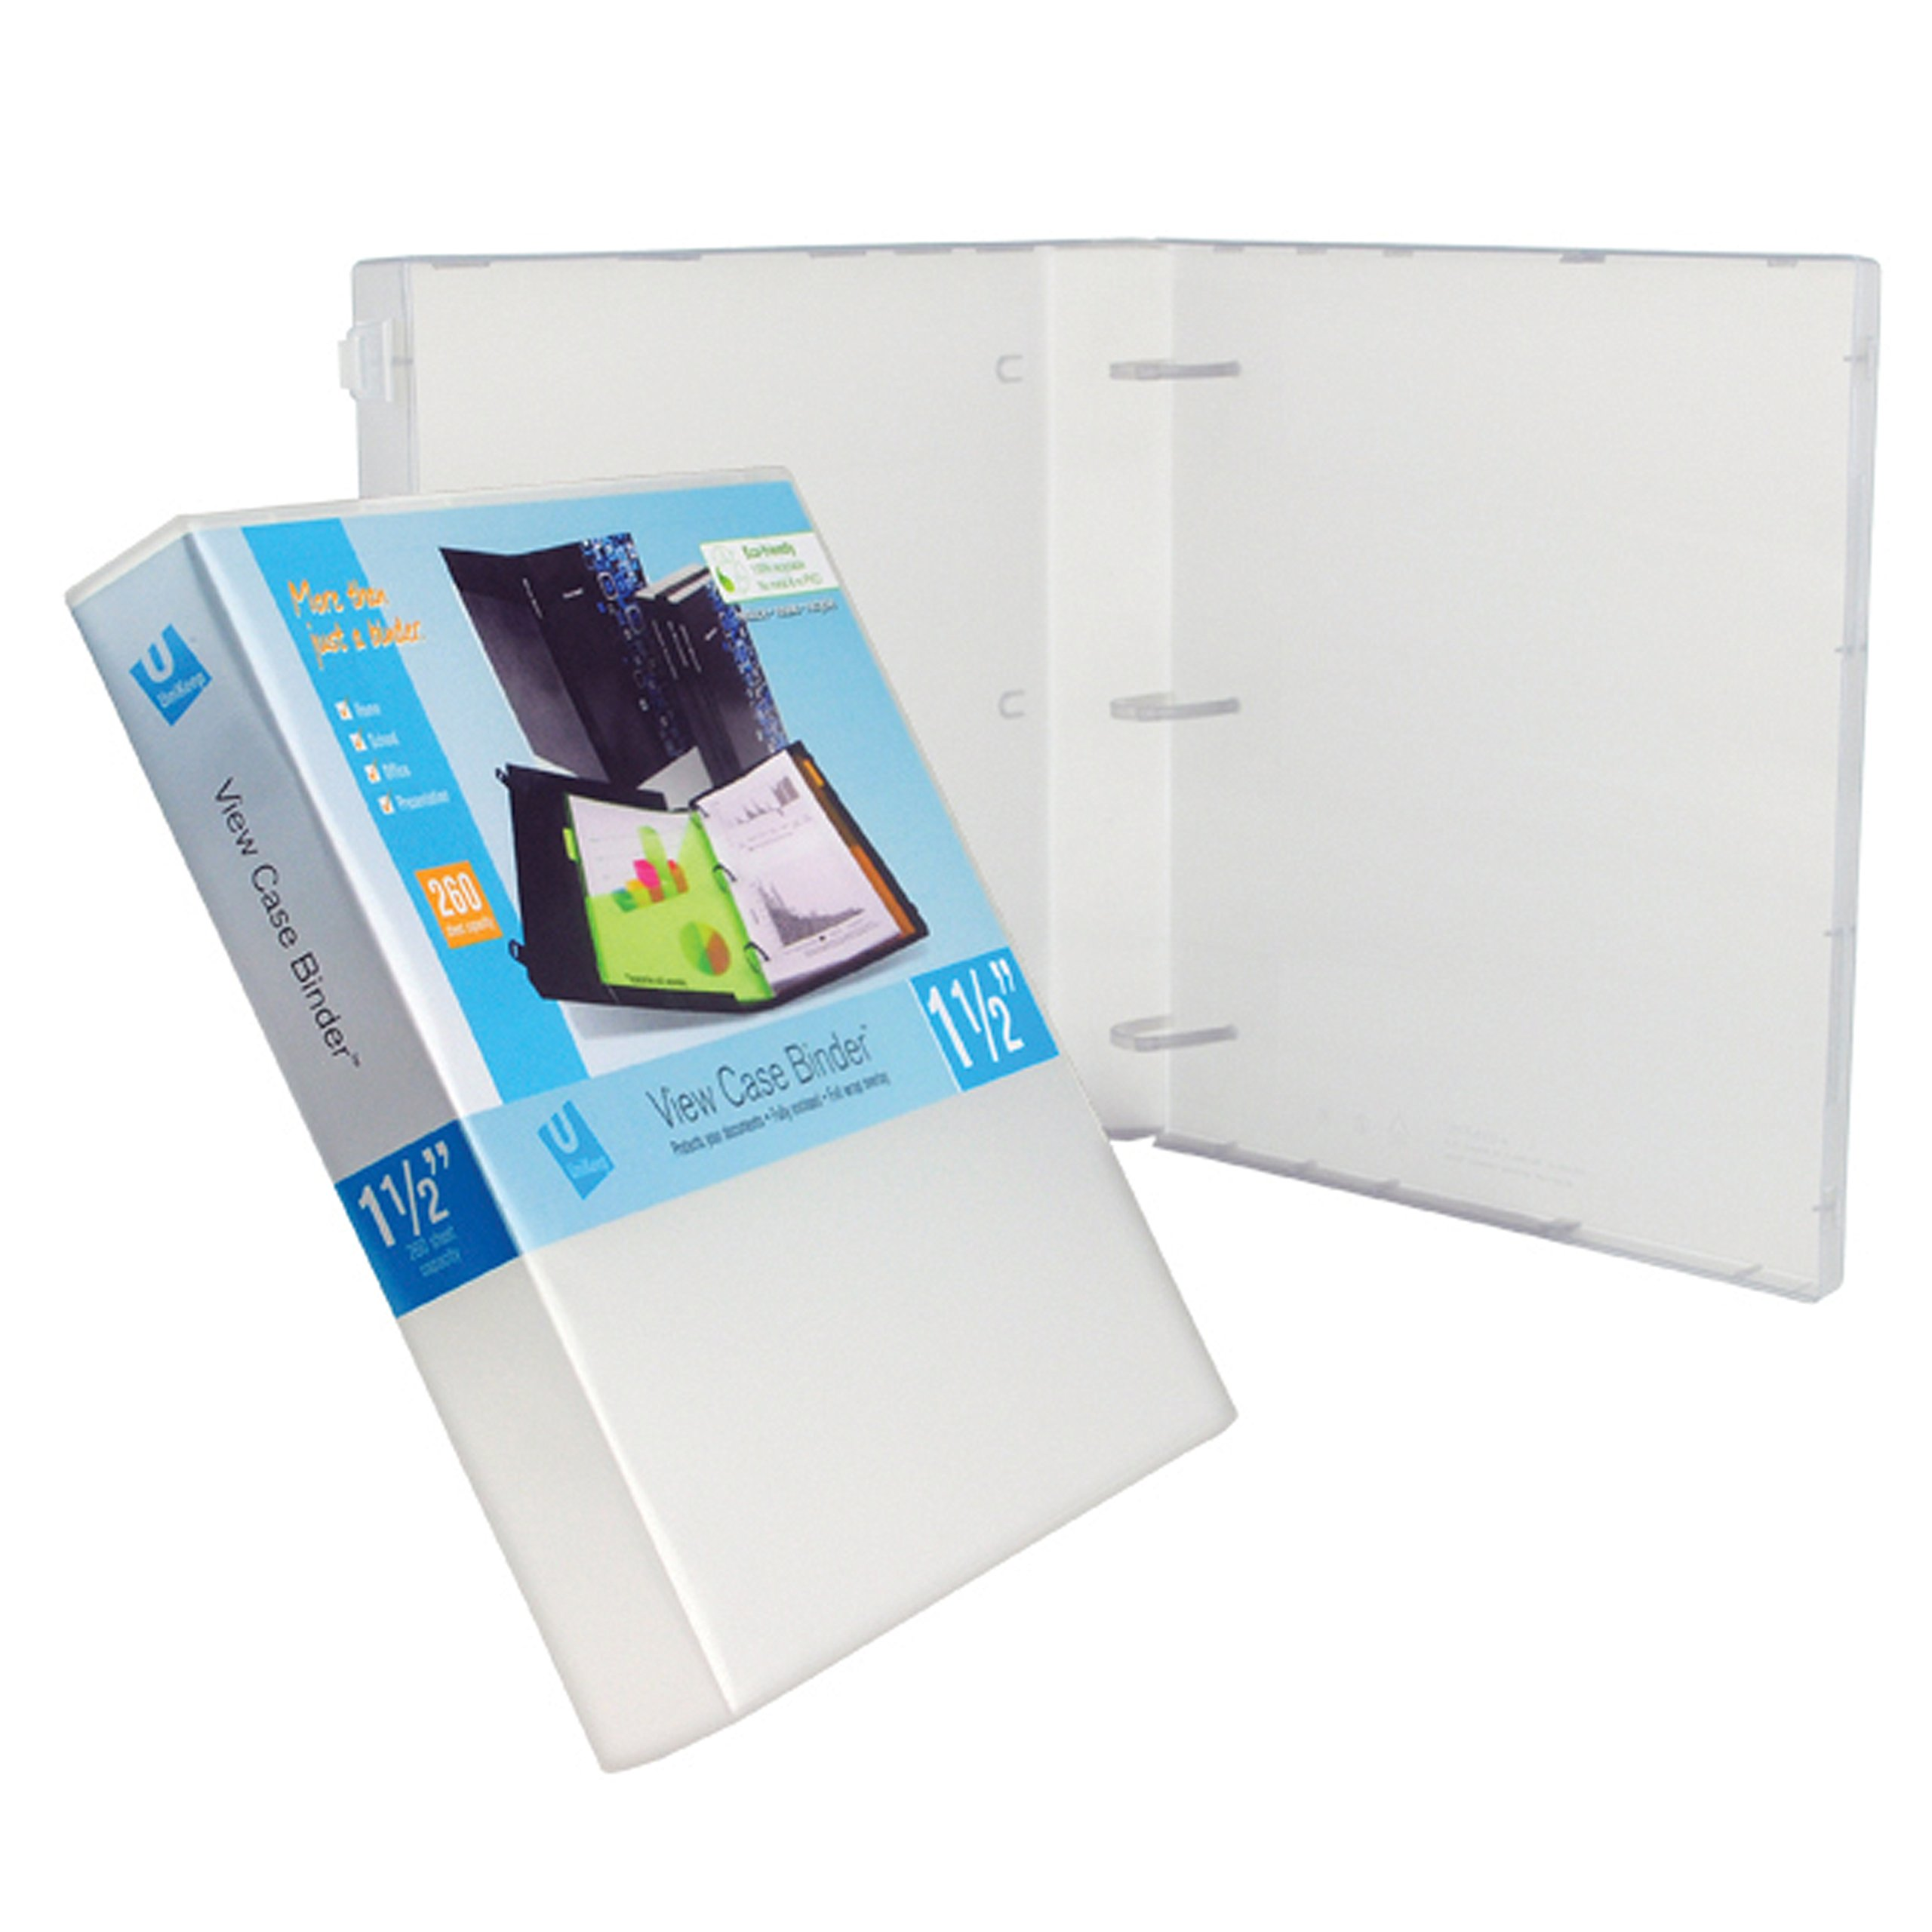 UniKeep 3 Ring Binder - Clear - Case View Binder - 1.5 Inch Spine - with Clear Outer Overlay - Box of 15 Binders by UniKeep